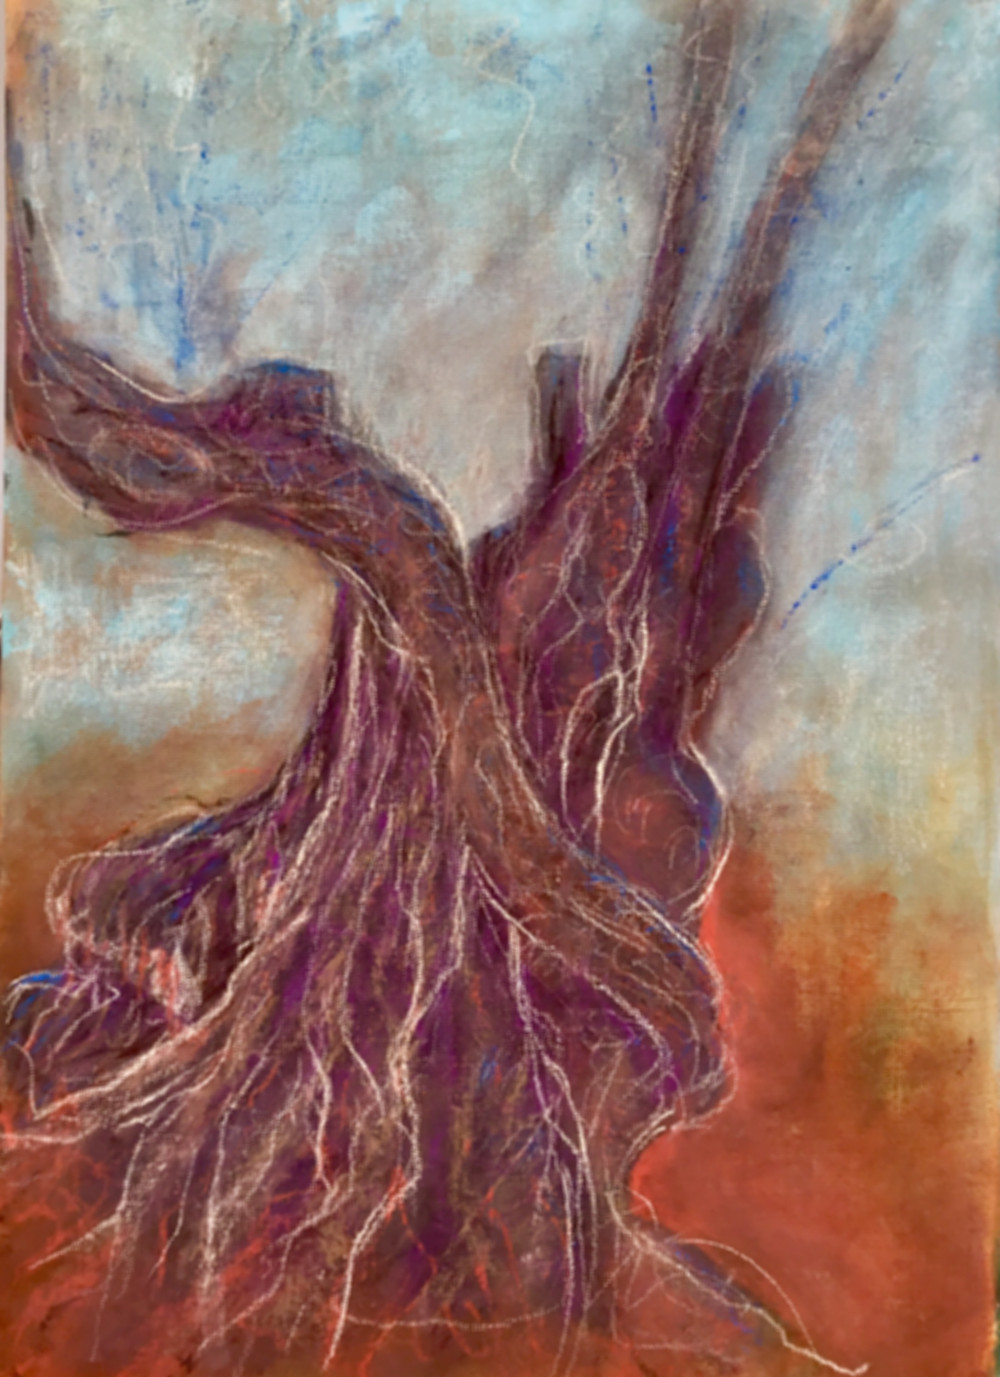 An ancient tree with twisted roots and broken branches stands in a land of red earth and reaches branches to a mottled cyan-coloured sky. Broken white lines creep around the tree trunk like veins.